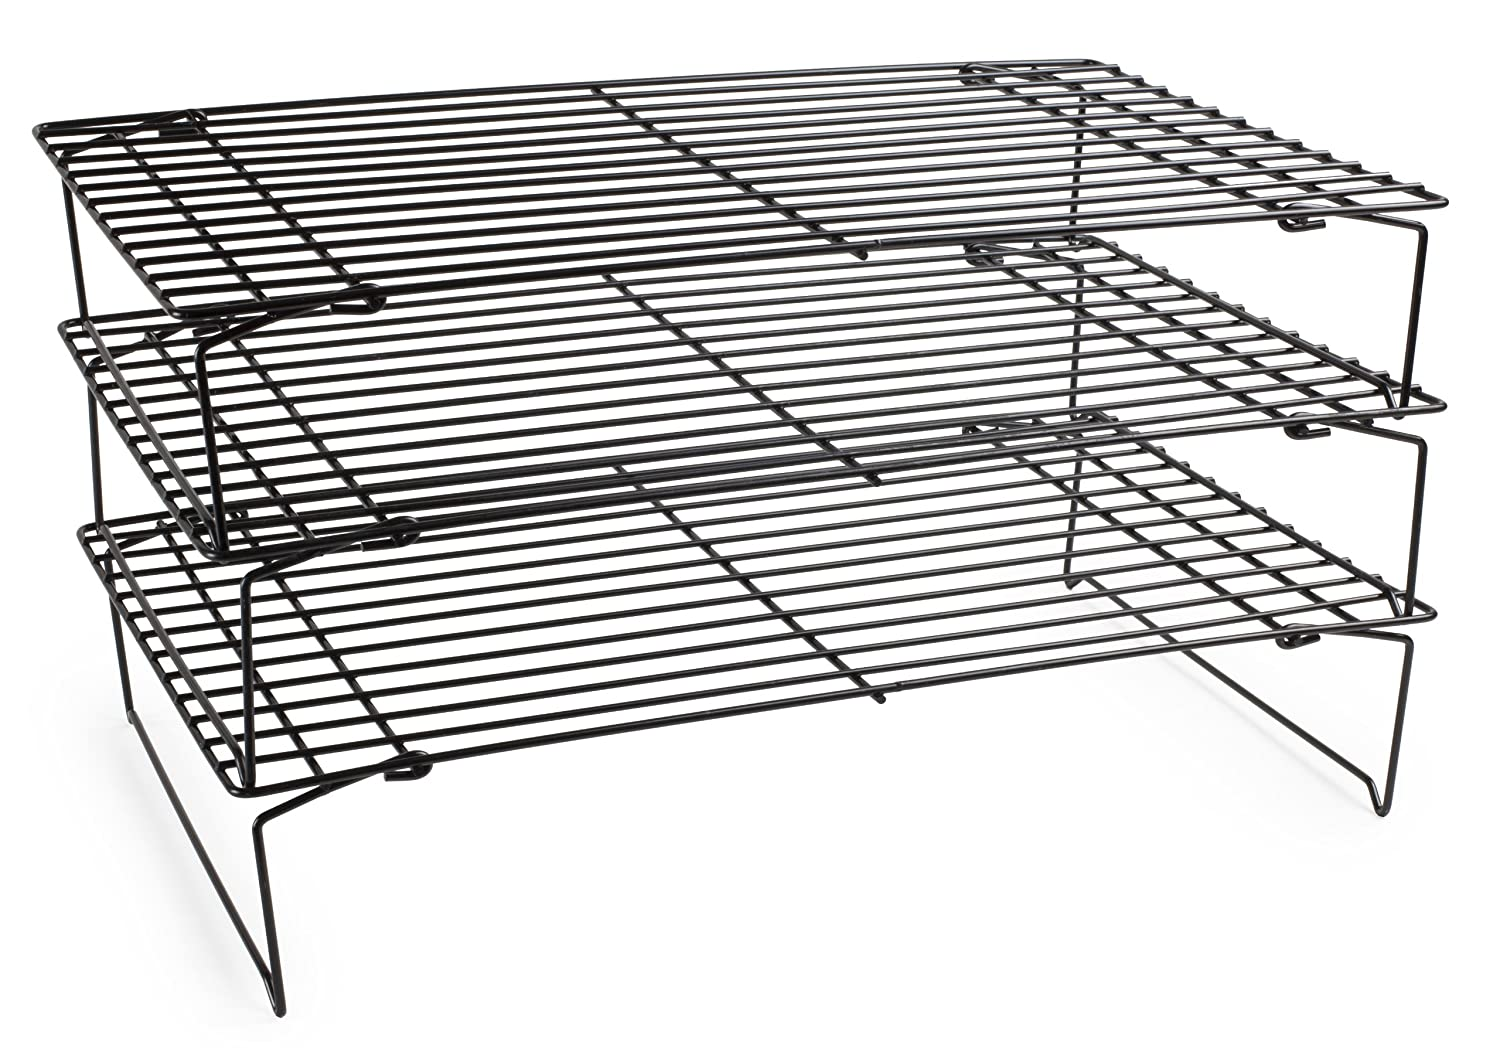 Andrew James E Saving 3 Tier Stackable Cooling Rack Each 39 5 X 25cm 7 5cm Vertical Collapsible Legs Heat Resistant For Oven Use